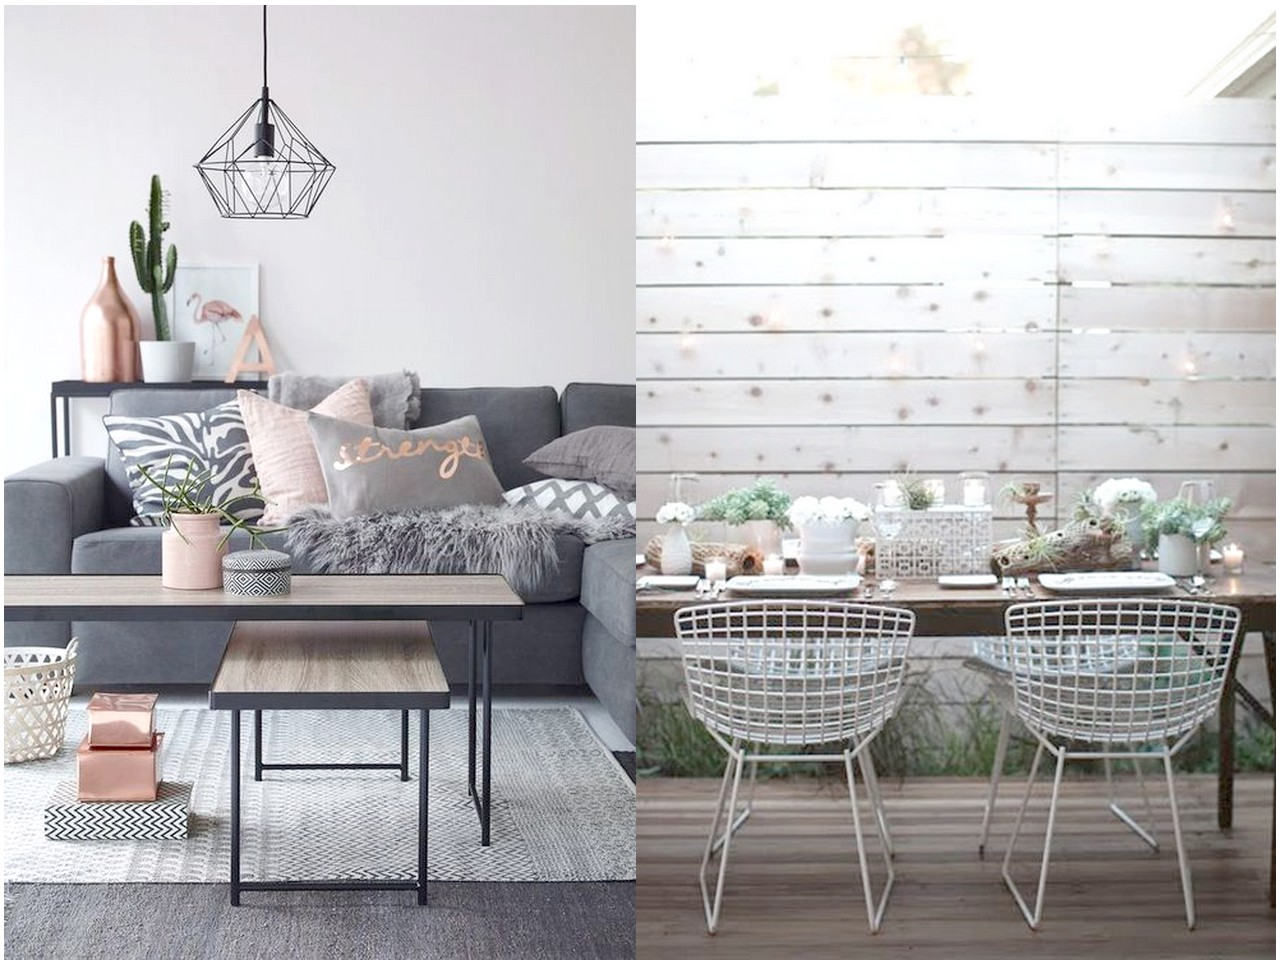 Tendencias 2016 2017 decorar con metal for Tendencias 2016 en decoracion de interiores